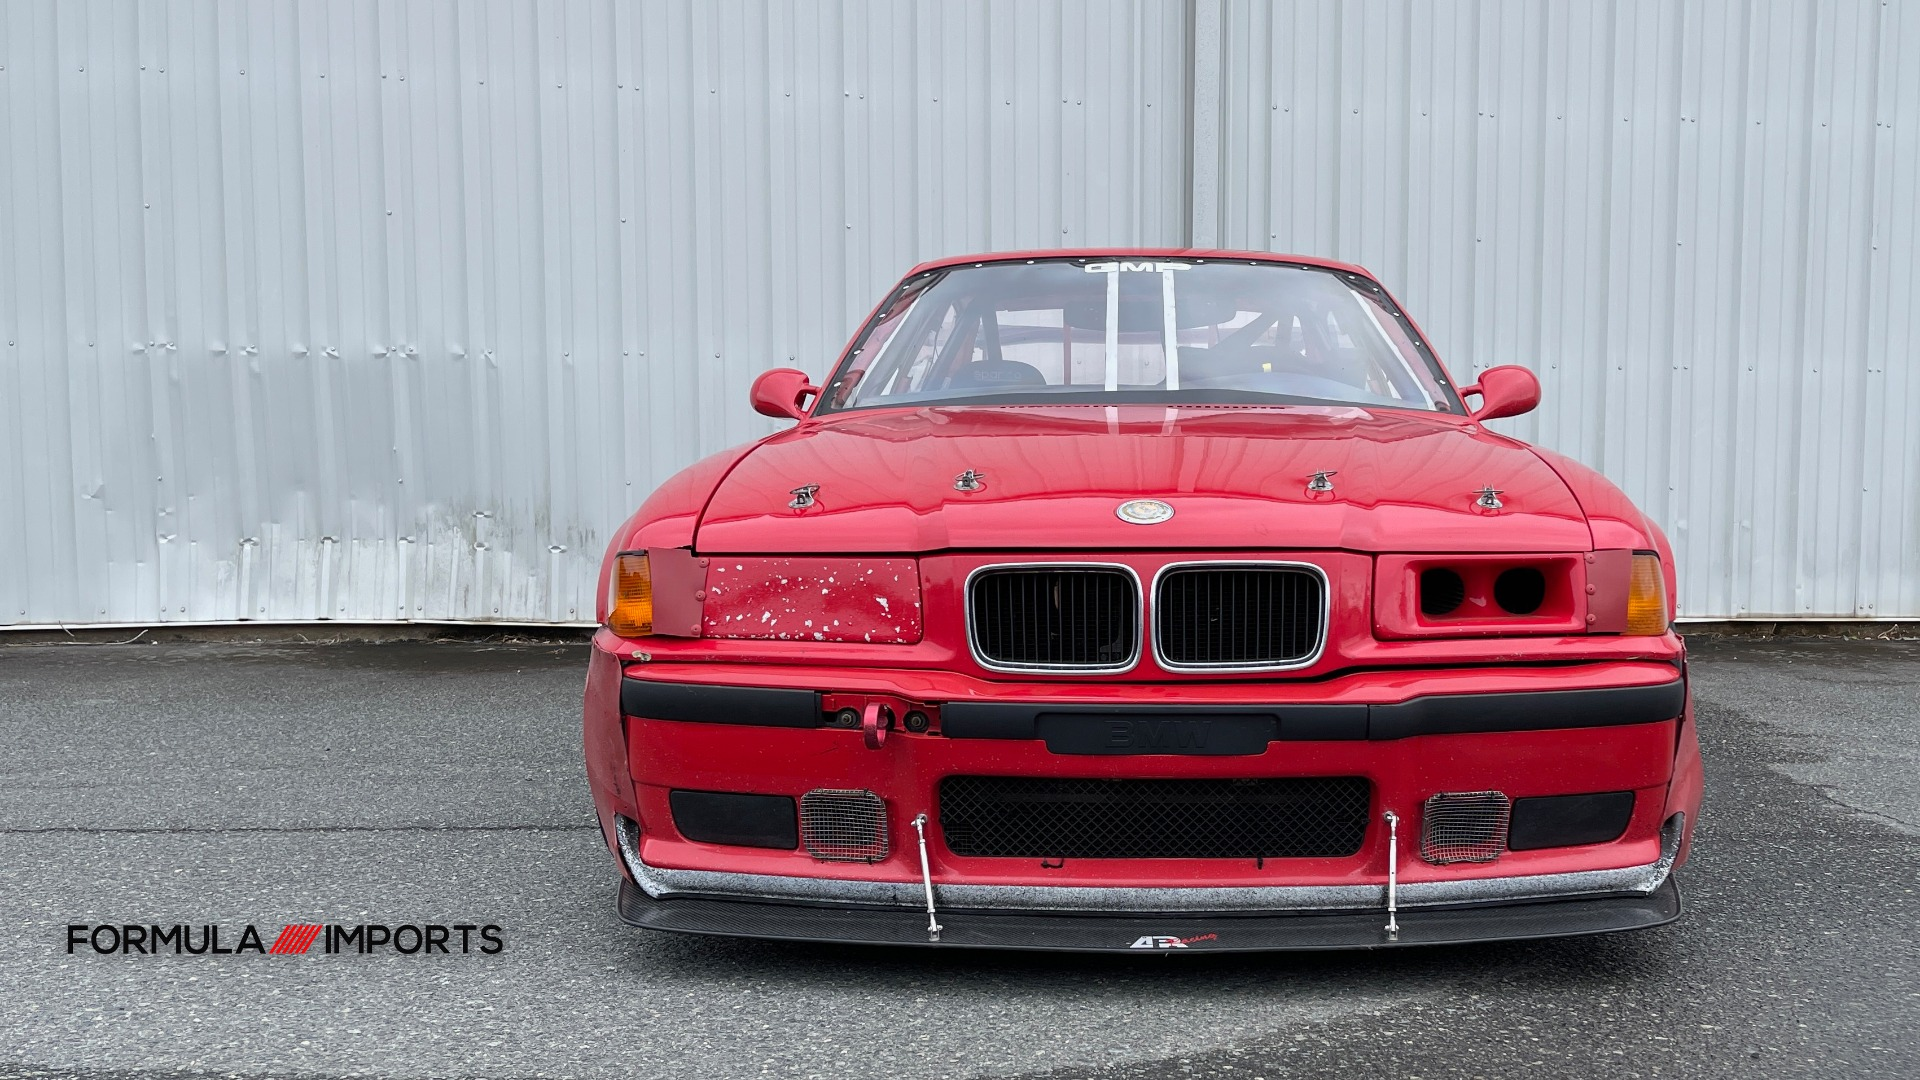 Used 1996 BMW 3-SERIES M3 TRACK CAR / 5-SPD / MANUAL / FULL CAGE / CARBON FIBER WING for sale $47,995 at Formula Imports in Charlotte NC 28227 21